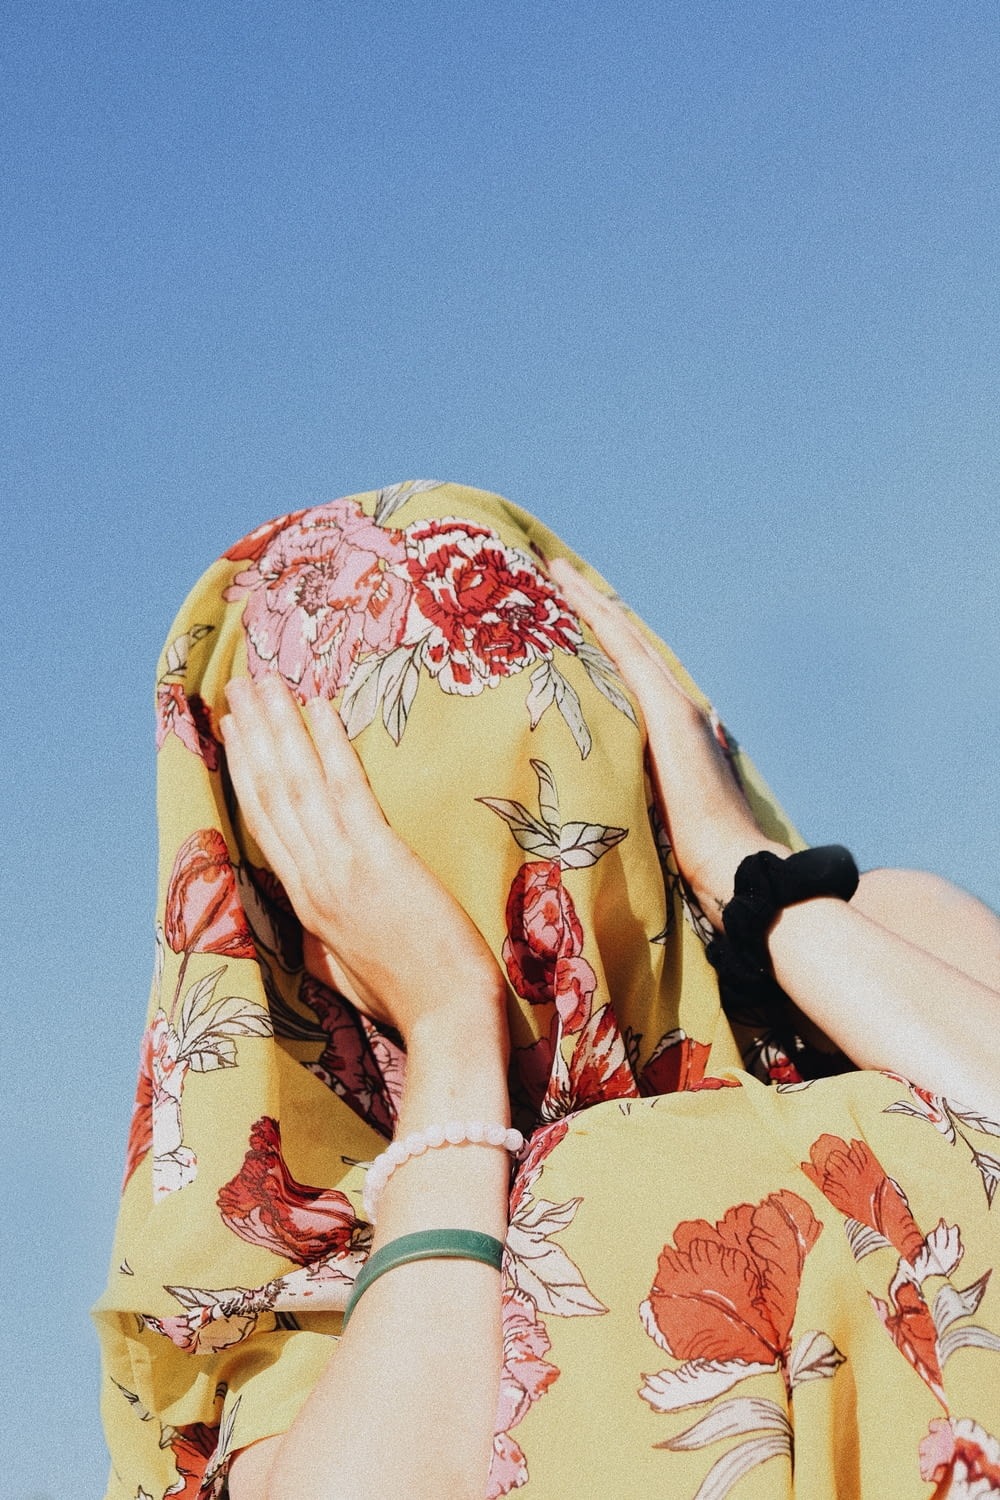 woman covering her face with yellow floral headdress